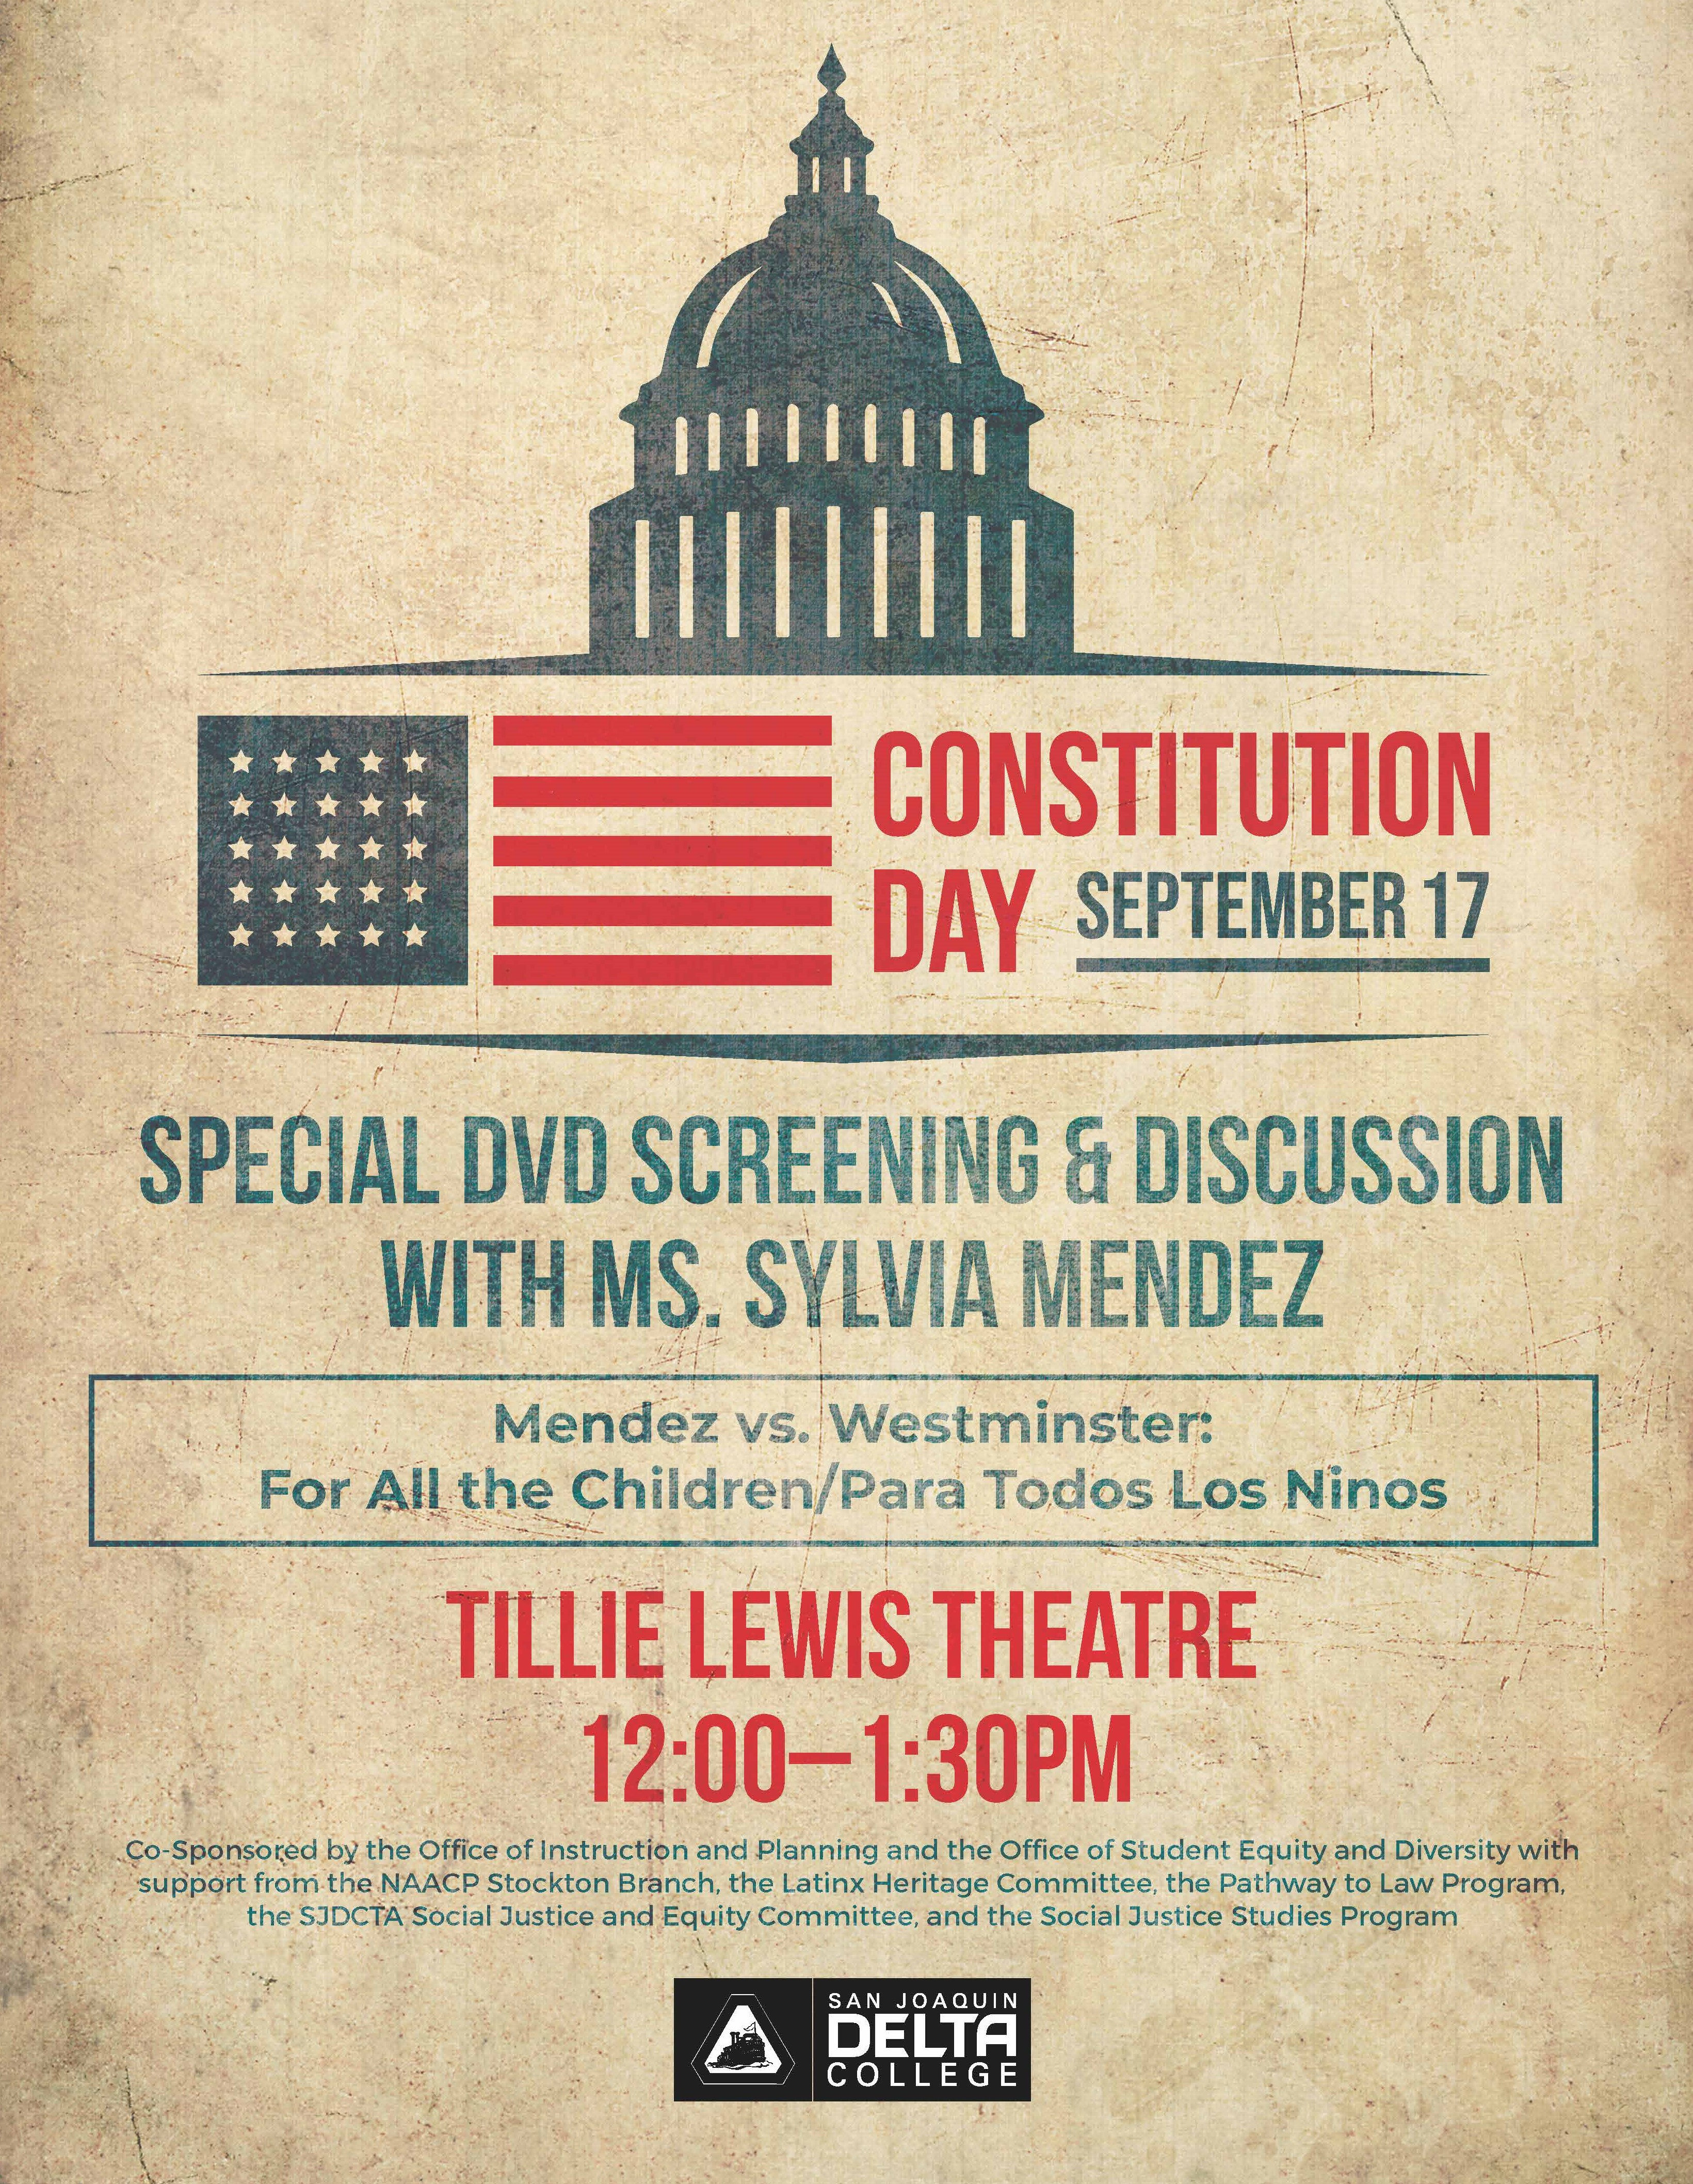 Presidential Medal of Freedom recipient Sylvia Mendez will be on hand for a special Constitution Day film screening at San Joaquin Delta College.